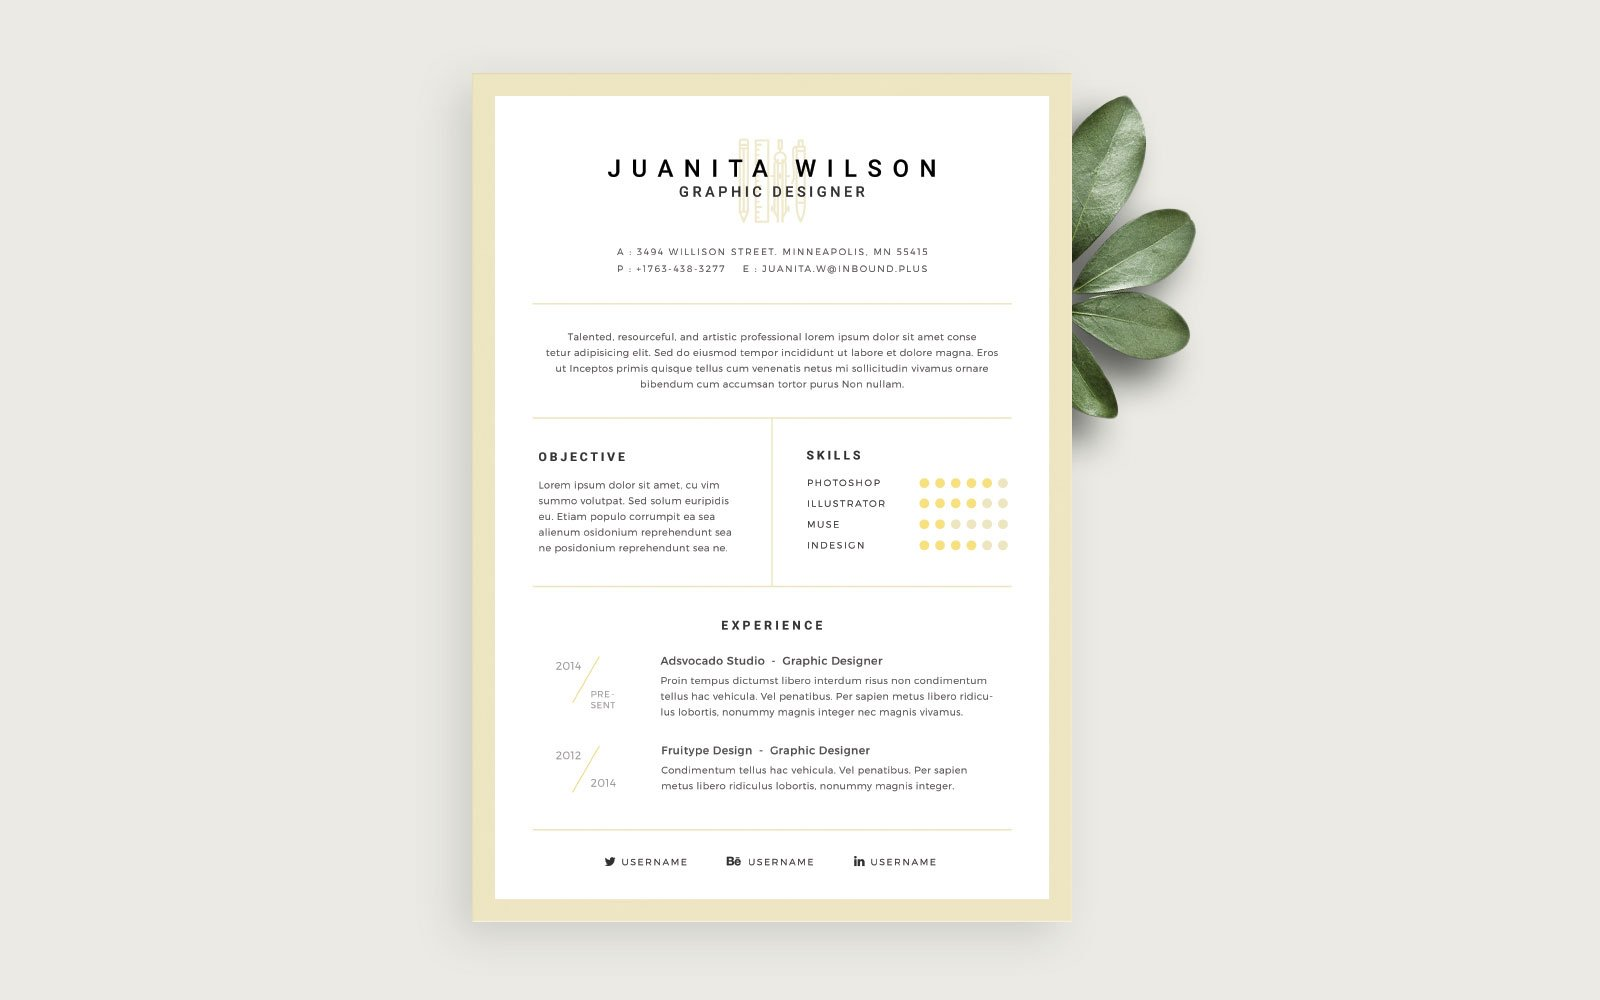 Template: Clean Resume - Preview Image